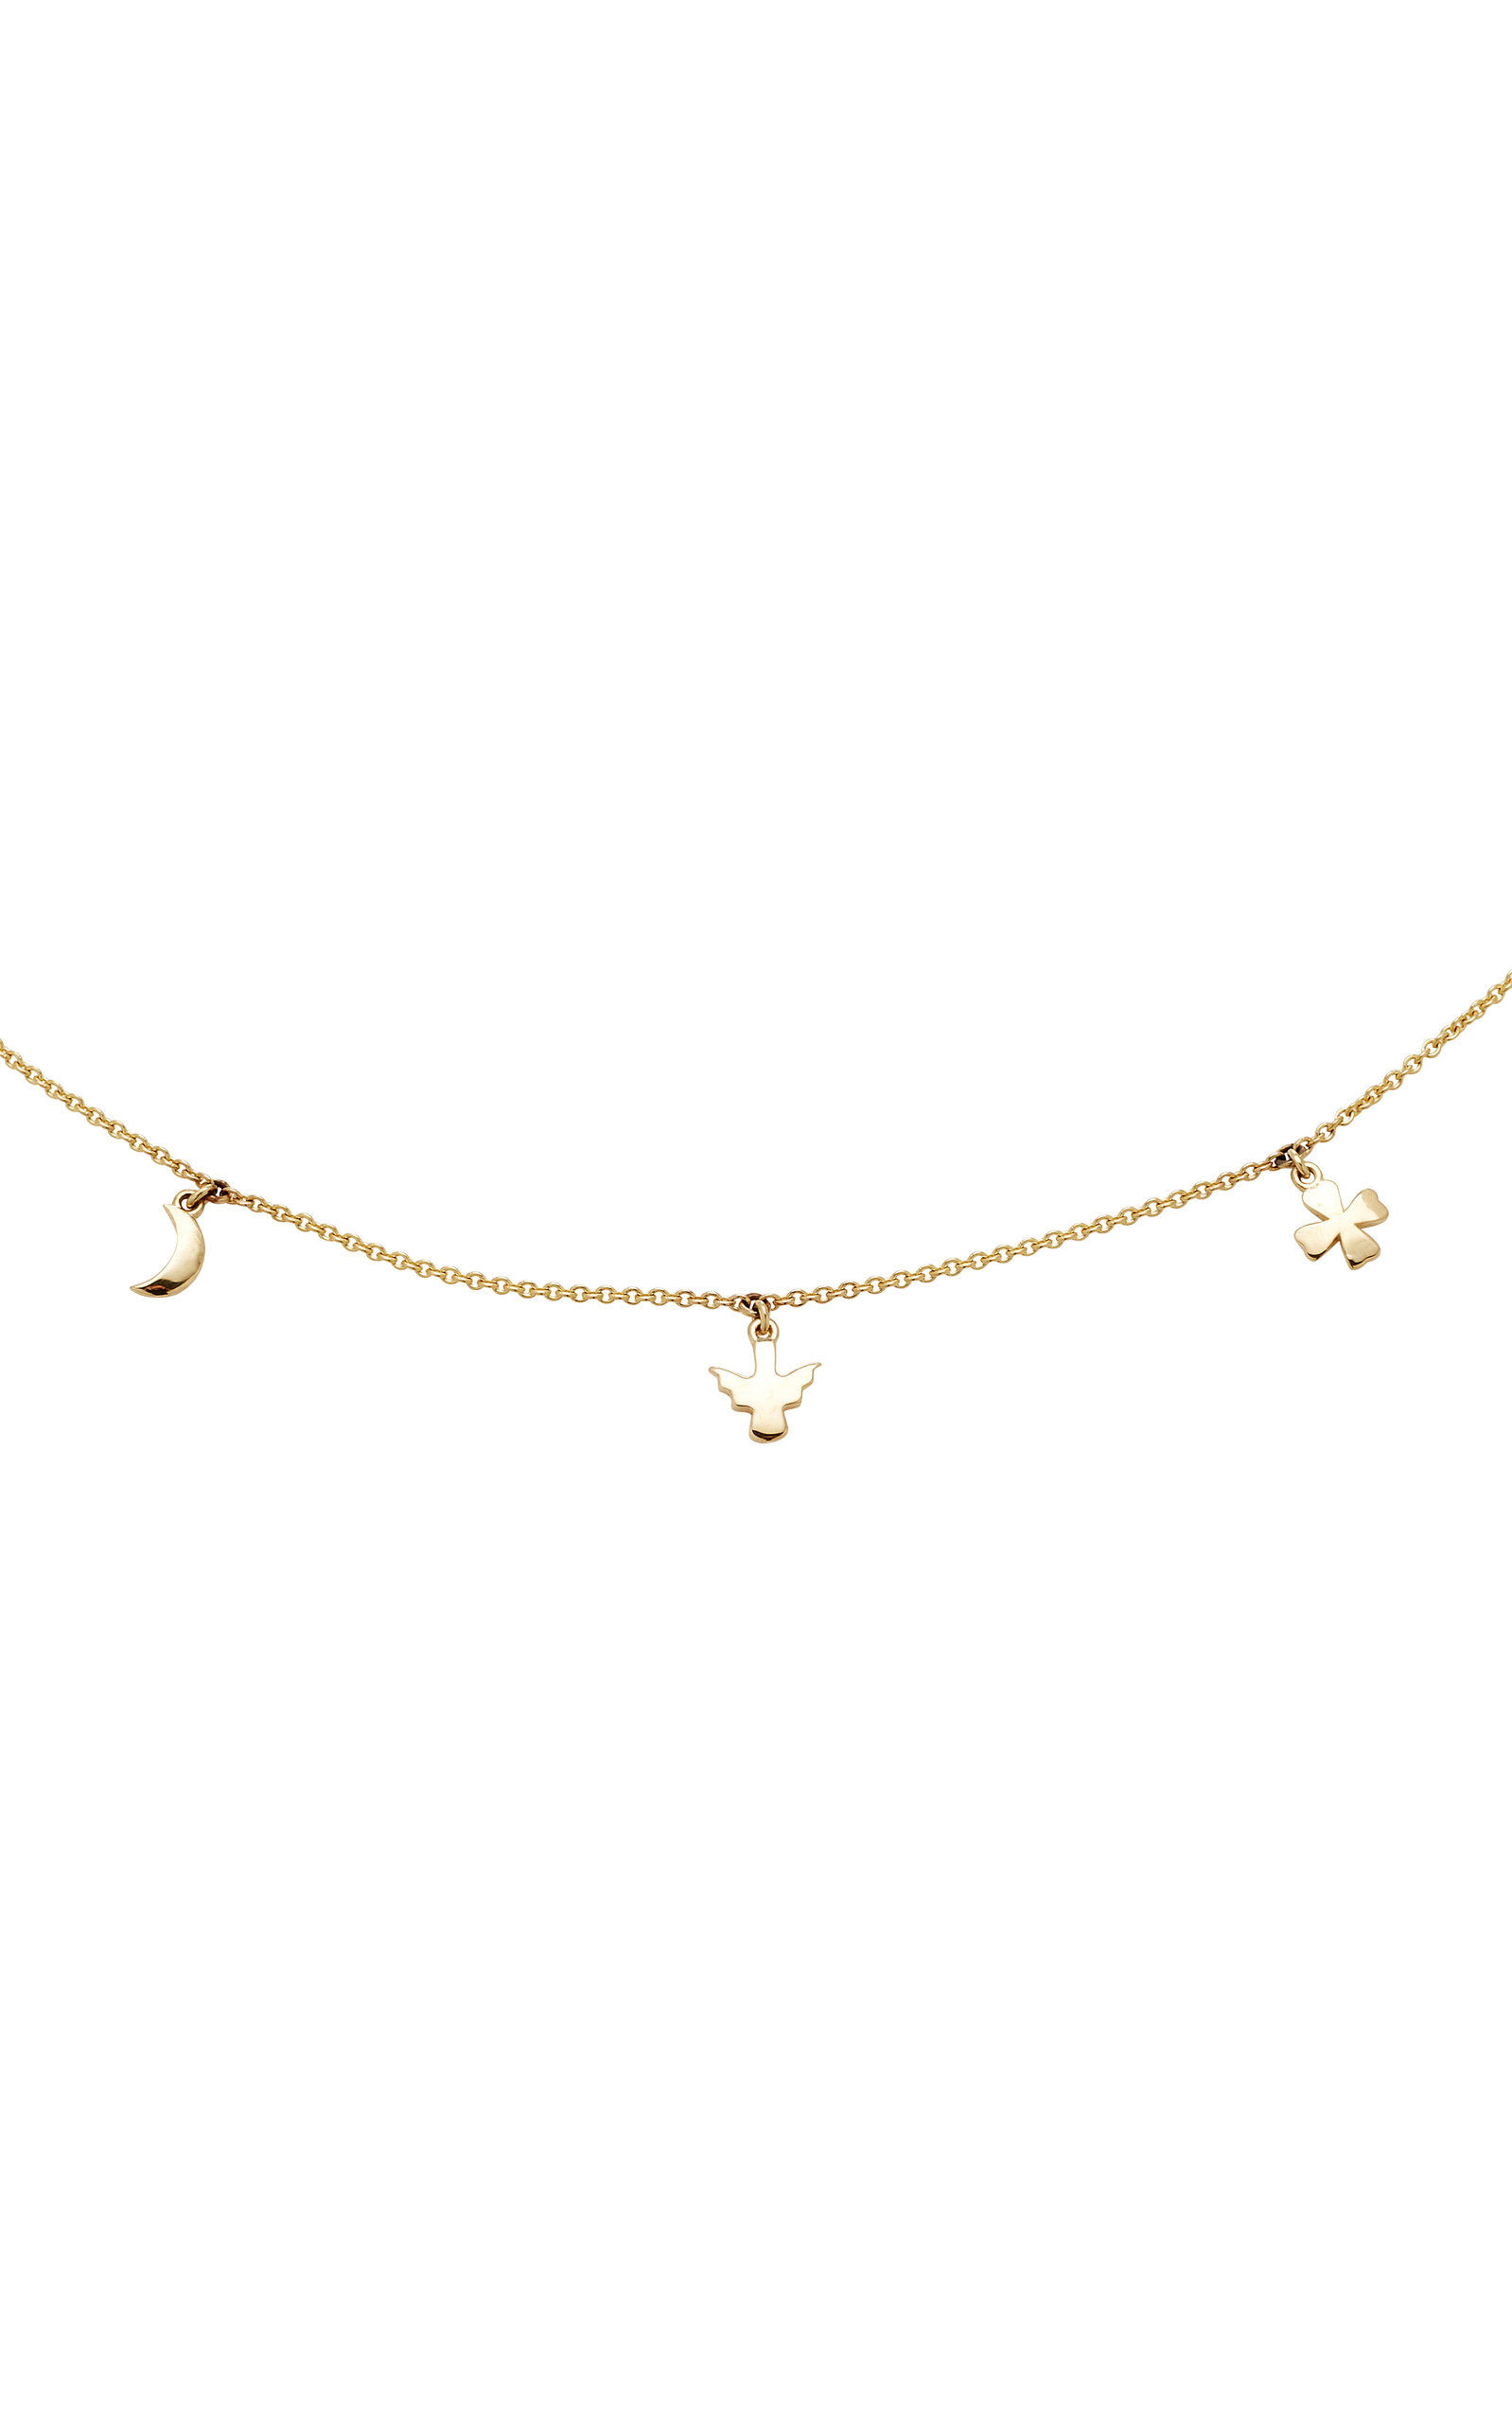 Love Eternity Guidance Luck & Magic 18K Gold Necklace With Love Darling a1CzM7a3IF